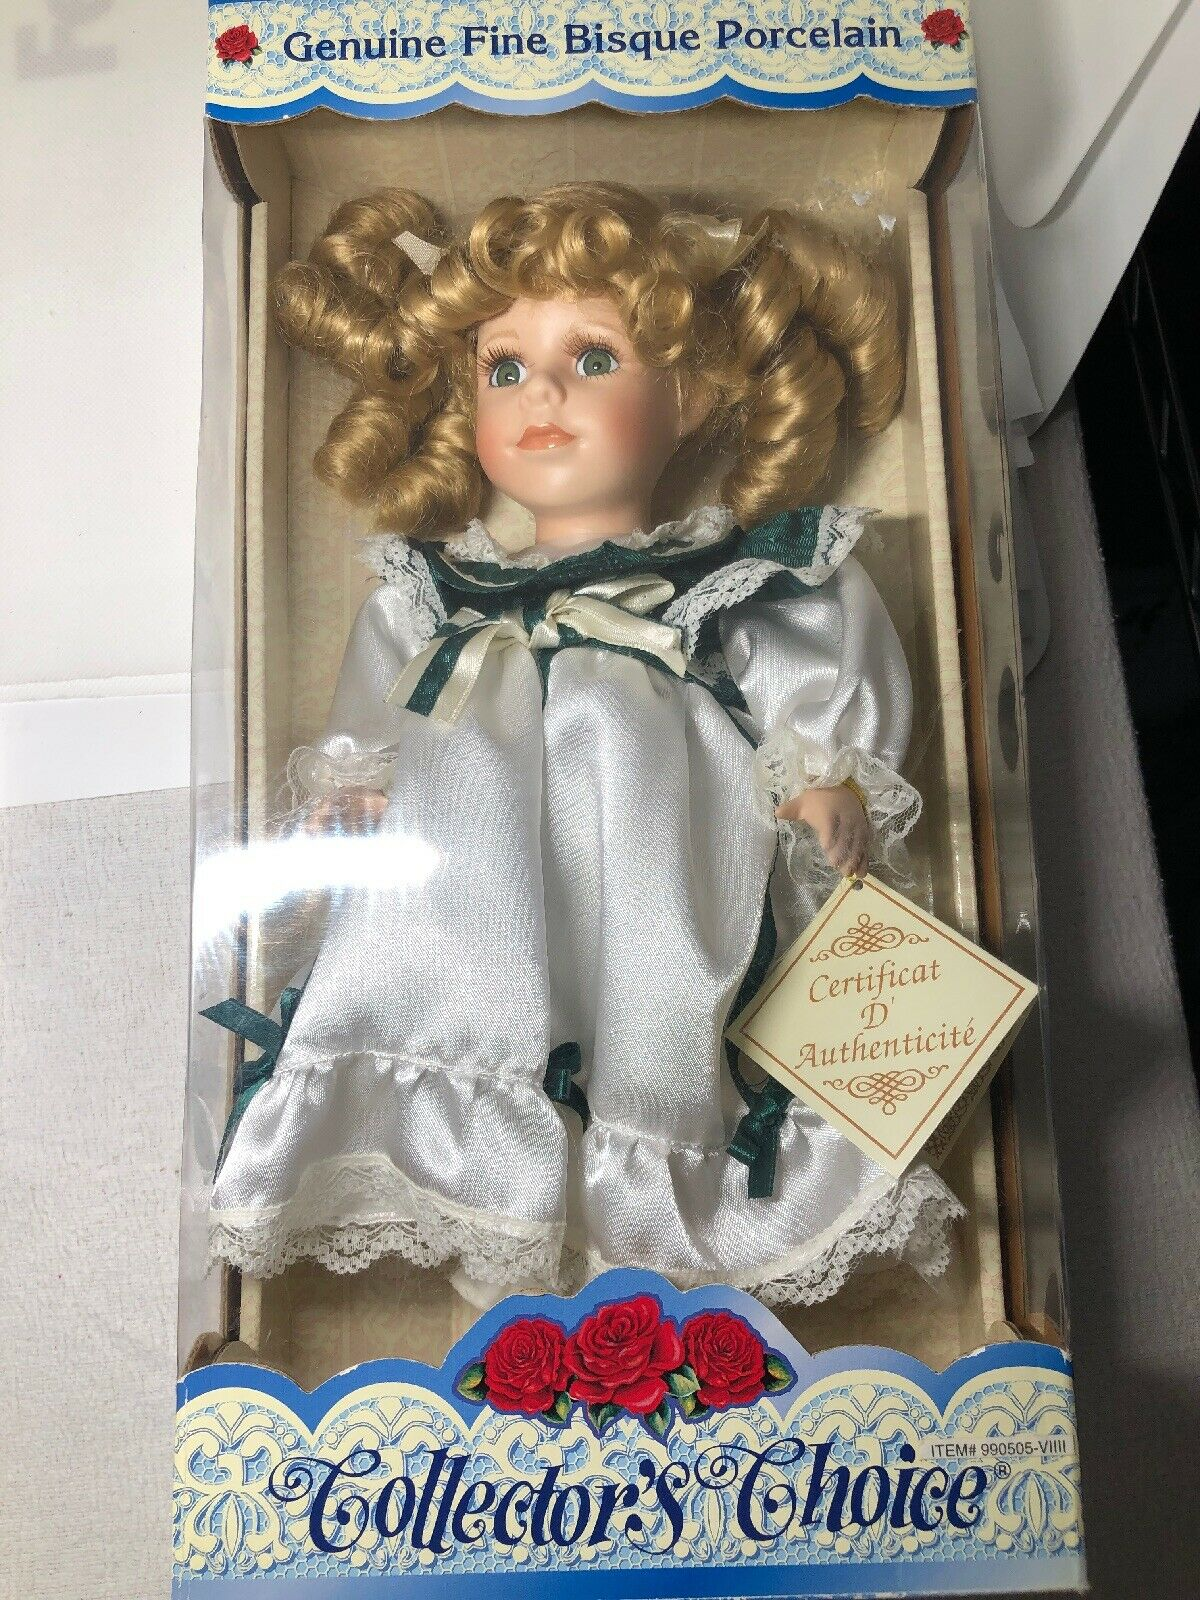 Collectors Choice Genuine Fine Bisque Porcelain Limited Edition Doll  13  Tall